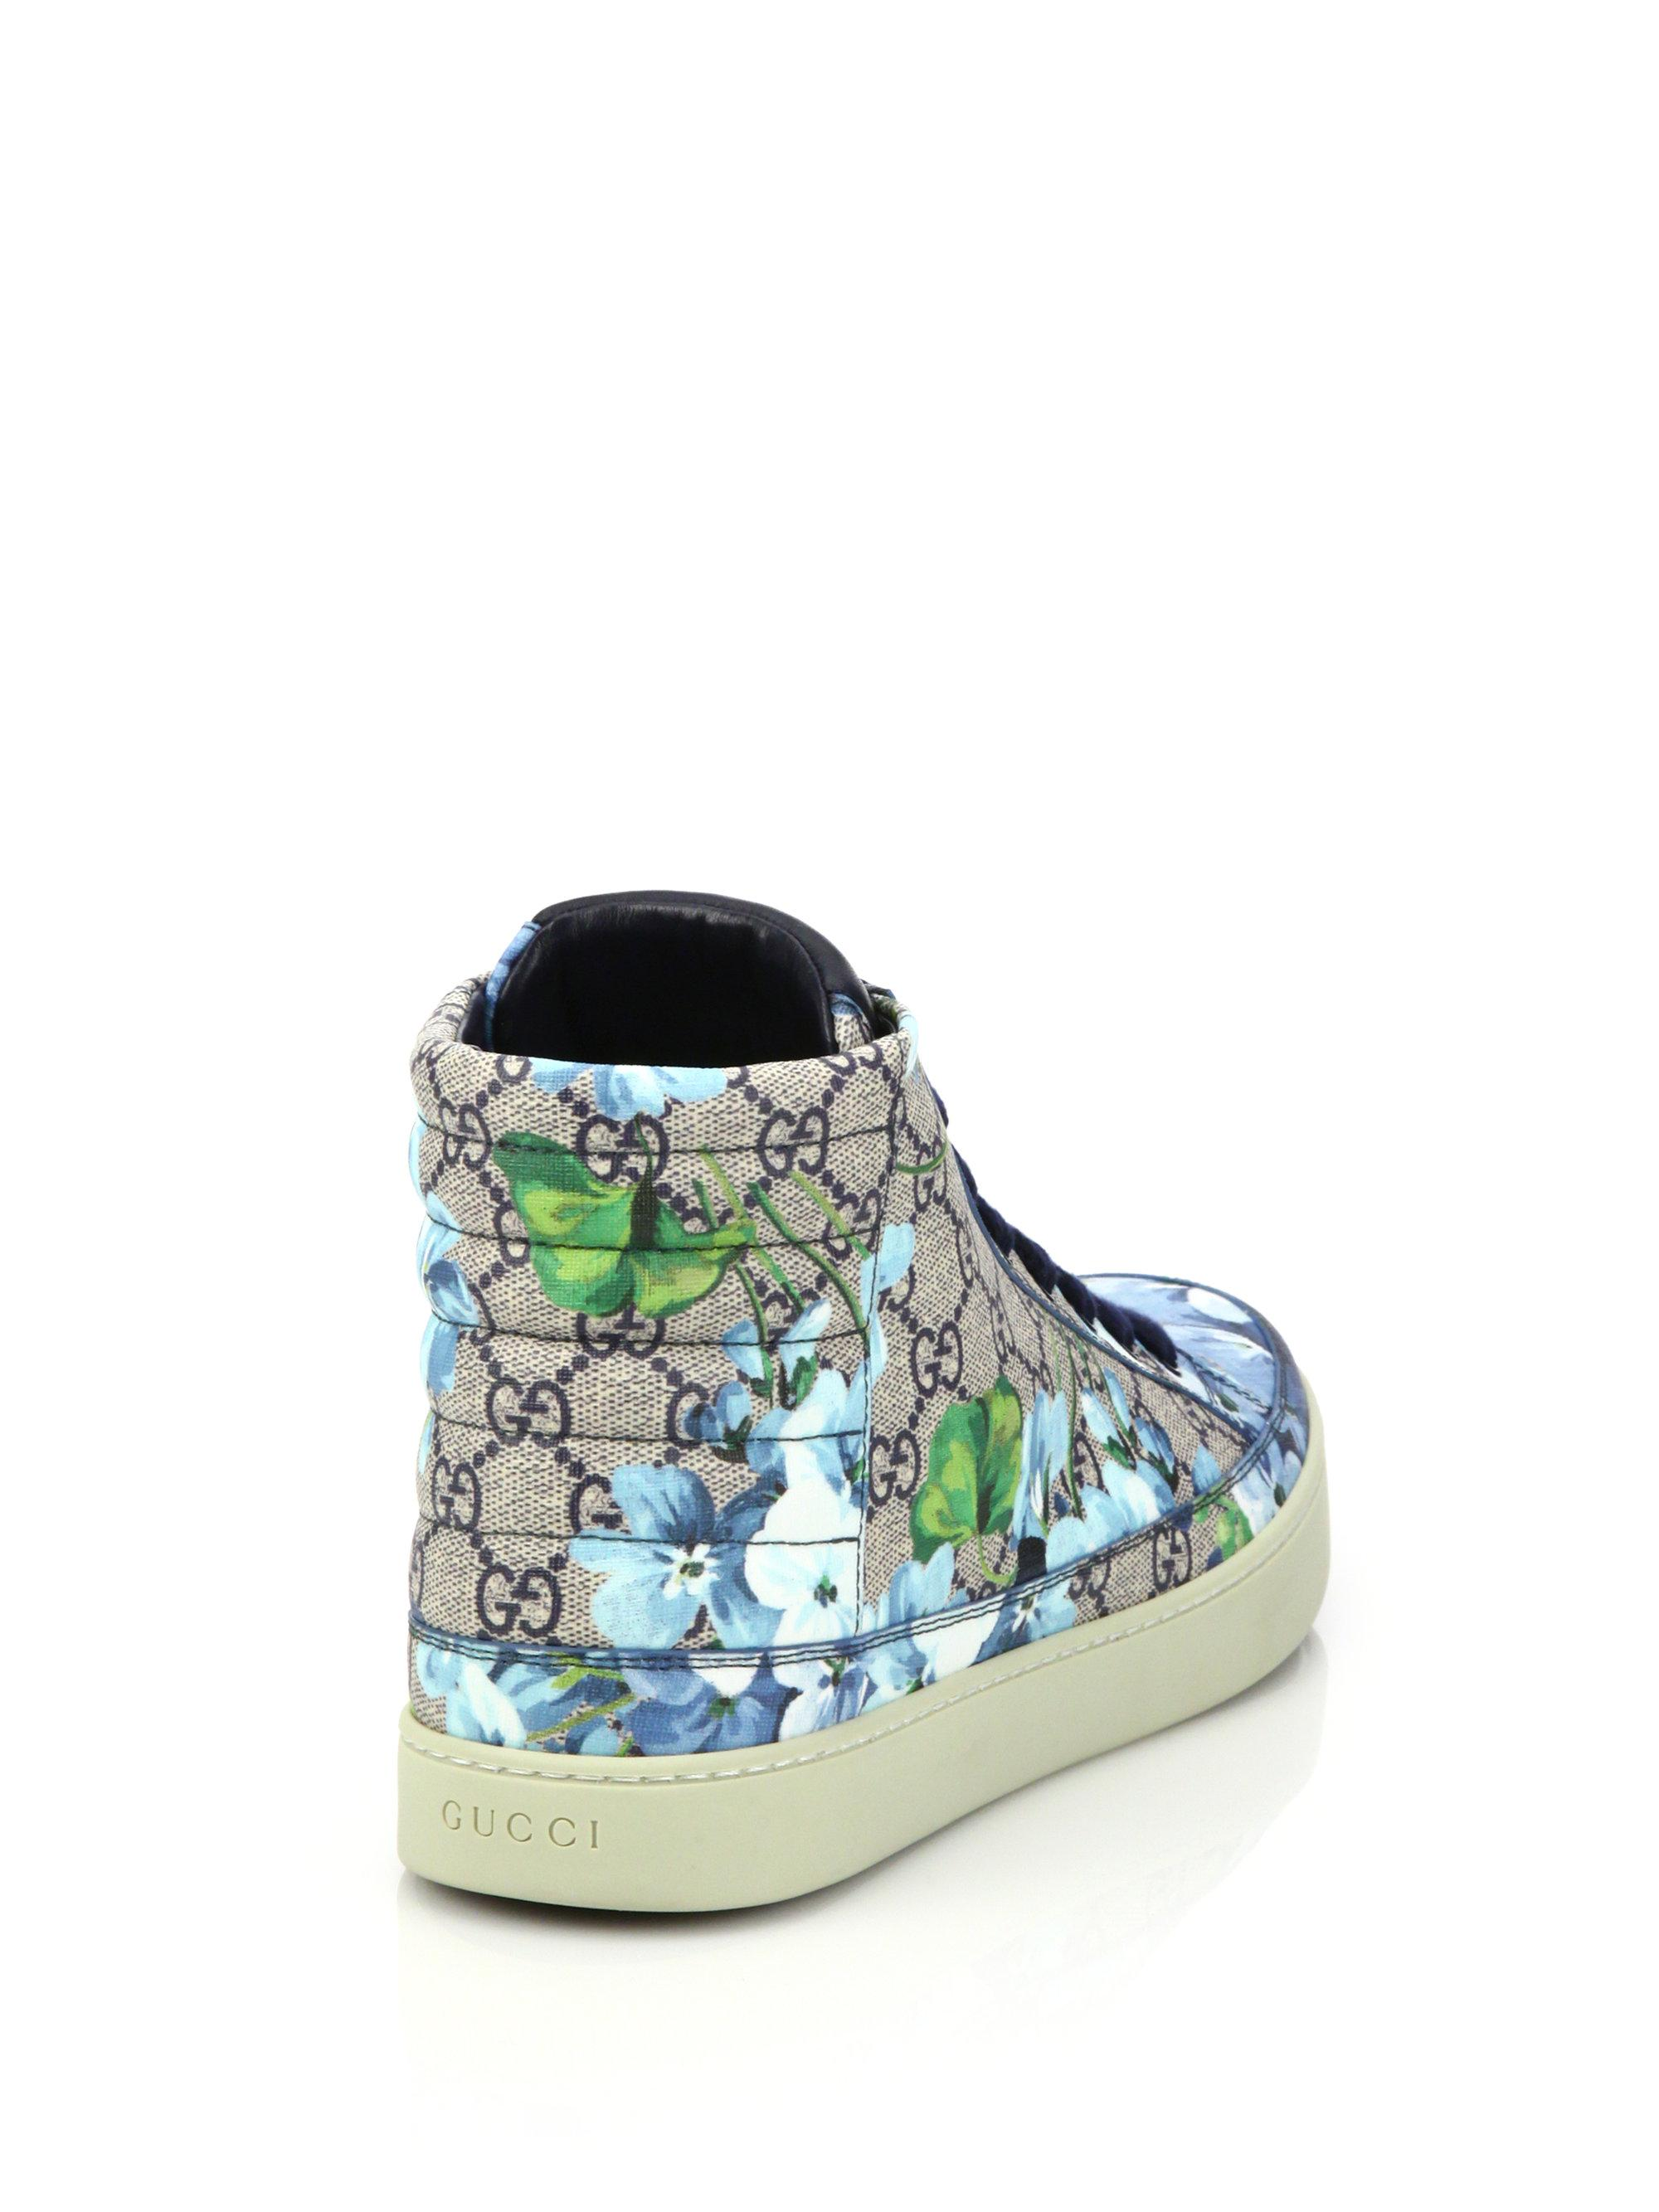 6954bdc58b9 Lyst - Gucci Blooms Print High-top Sneakers in Blue